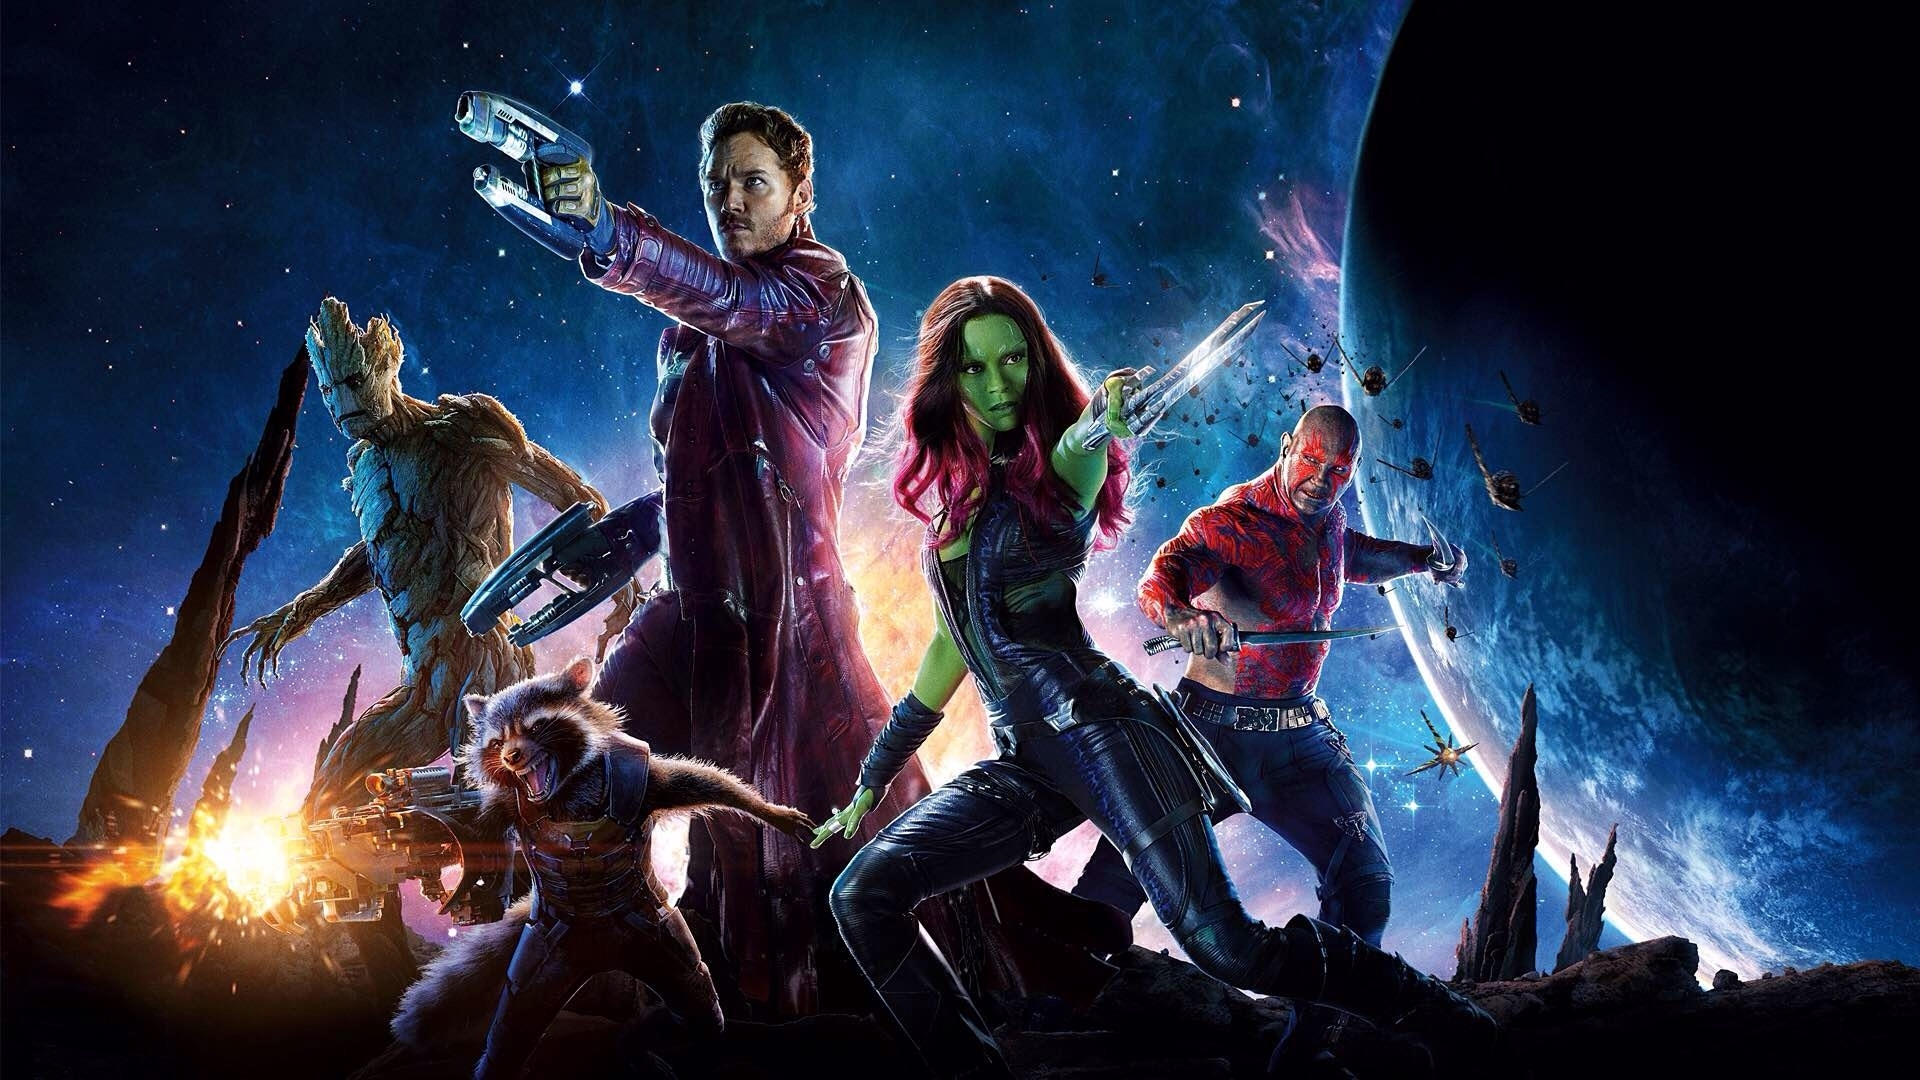 guardians of the galaxy hd — tools and toys